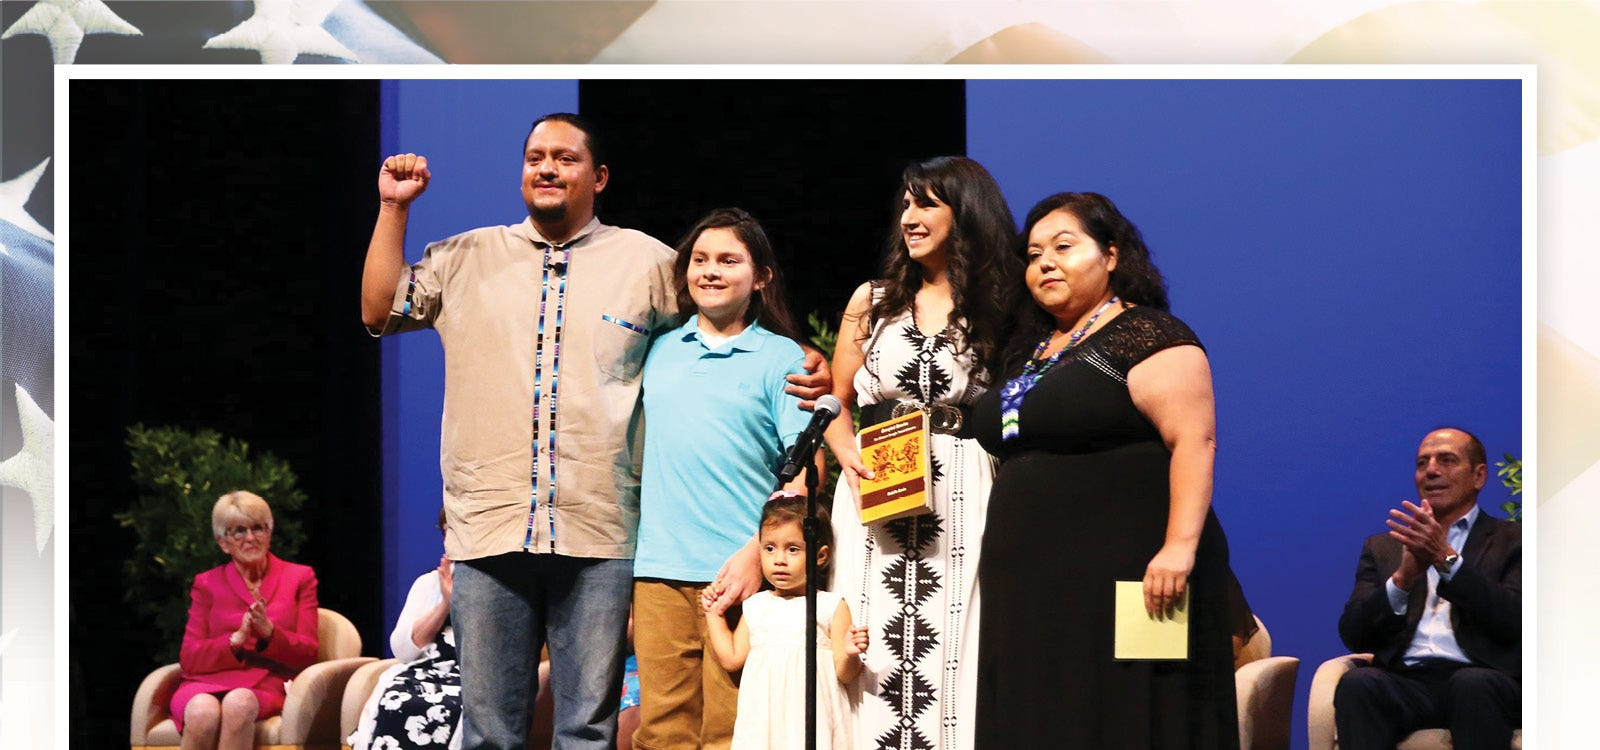 New City of Phoenix councilman for District 8, Carlos Garcia, poses with his family after taking the oath of office during the inauguration ceremony on June 6, 2019, at the Orpheum Theatre in Phoenix, Arizona.